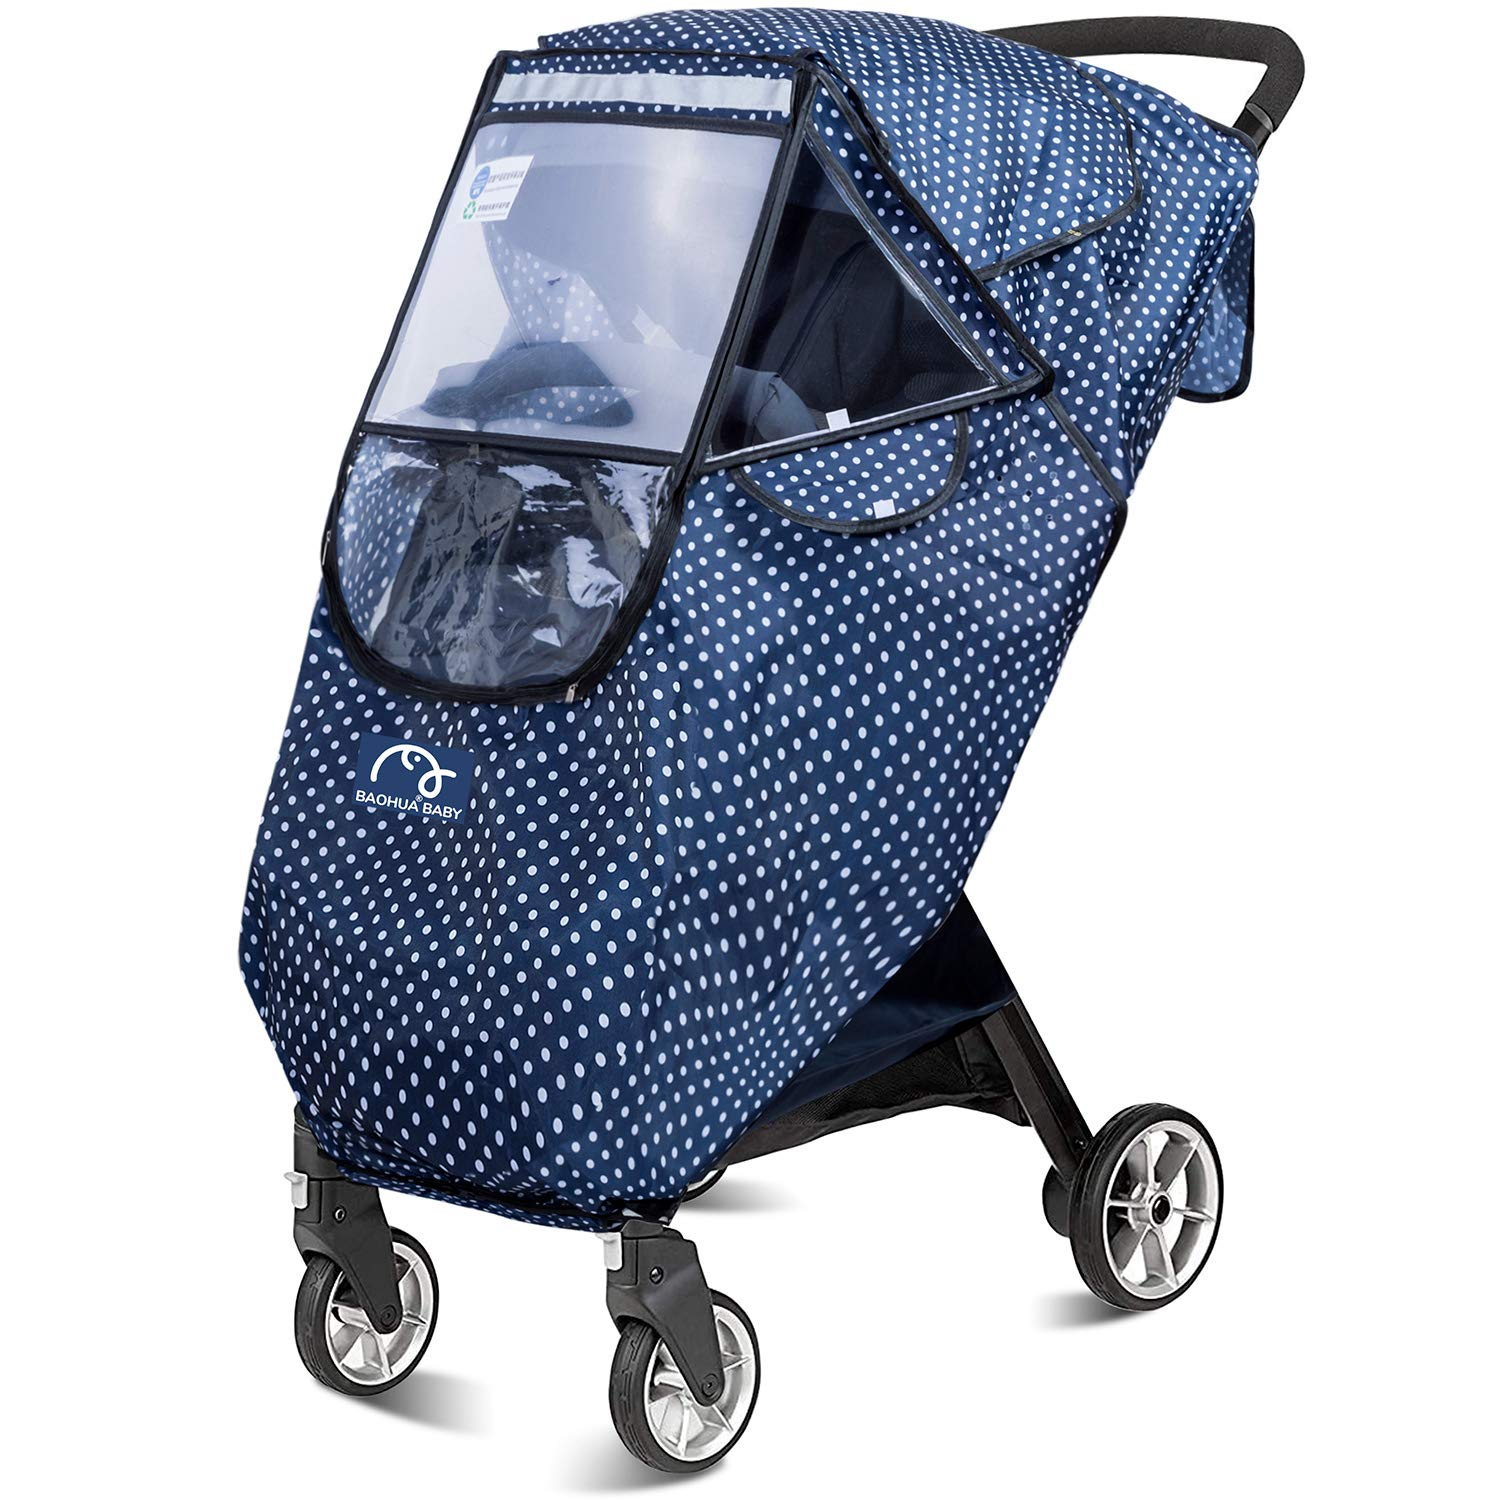 Stroller Rain Cover Snow and Windproof Travel Cover for Single Strollers Premium Stroller Weather Shield - Baby Shnookums Universal Rain Storage Bag Included